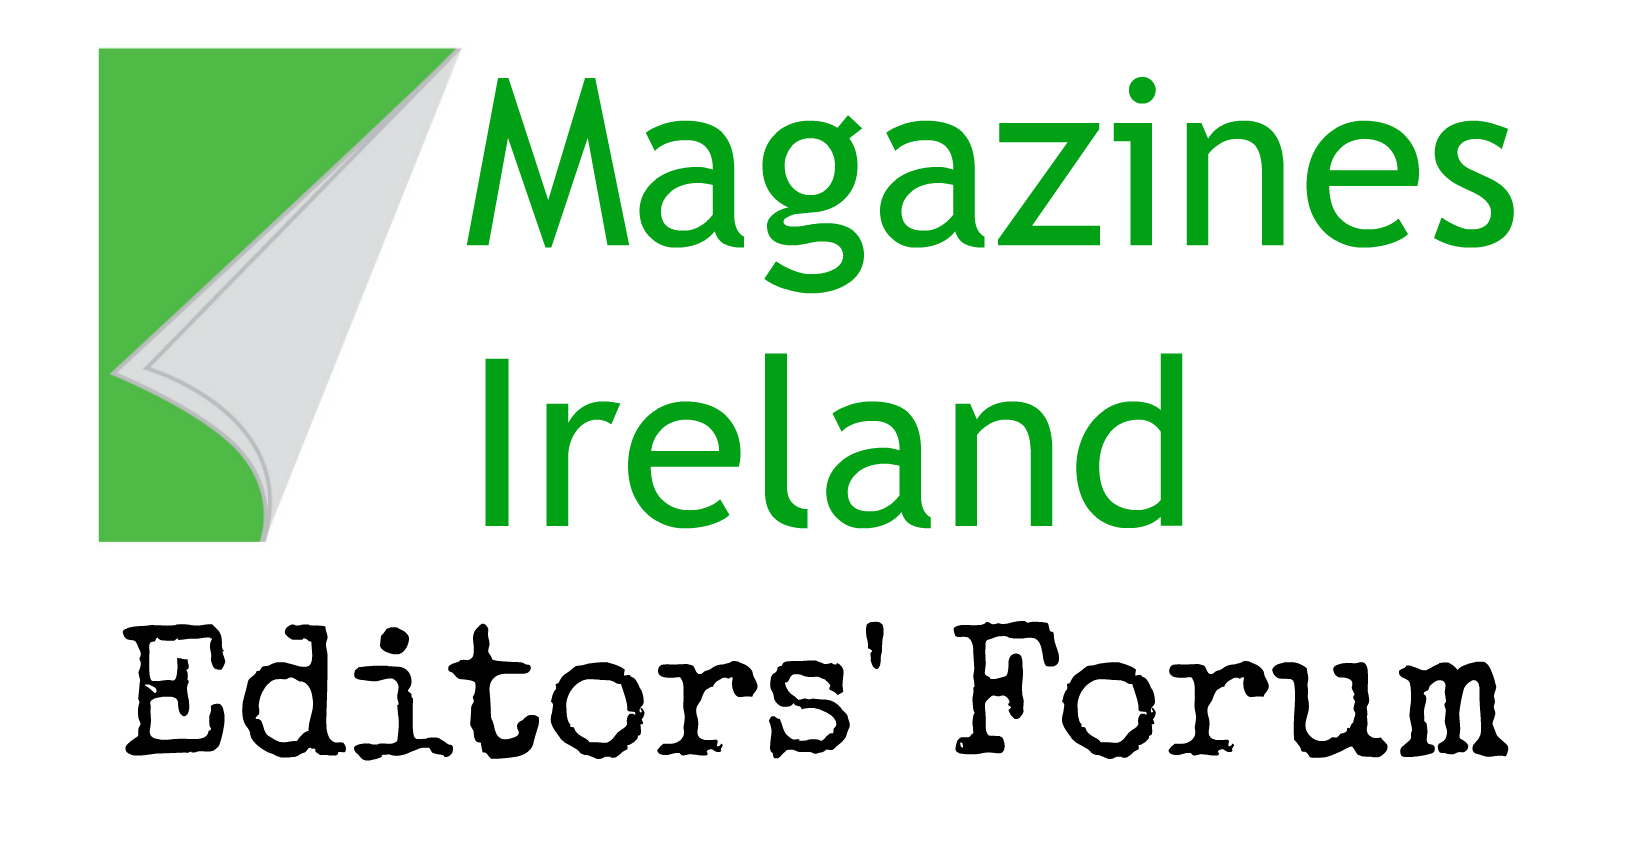 Magazines Ireland Editors' Forum